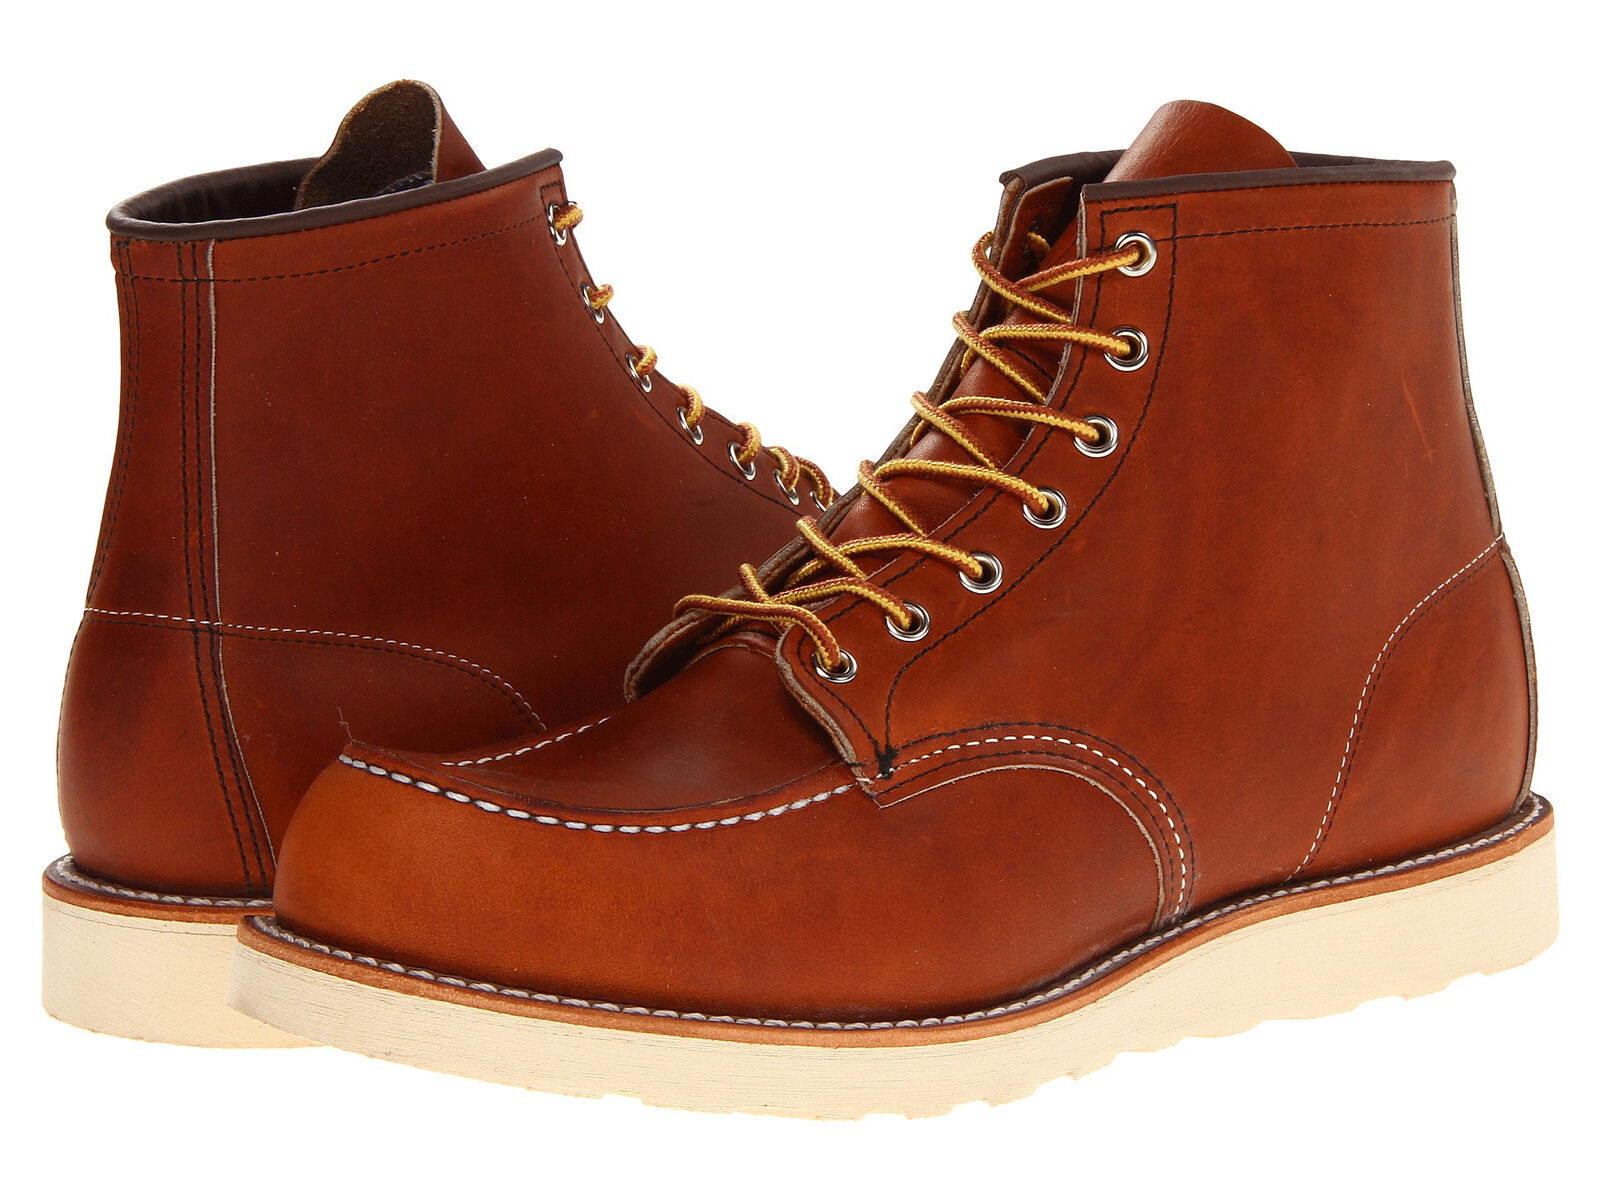 rosso WING oro LEGACY LEATHER CLASSIC MOC LACE UP uomo stivali 875 Marronee